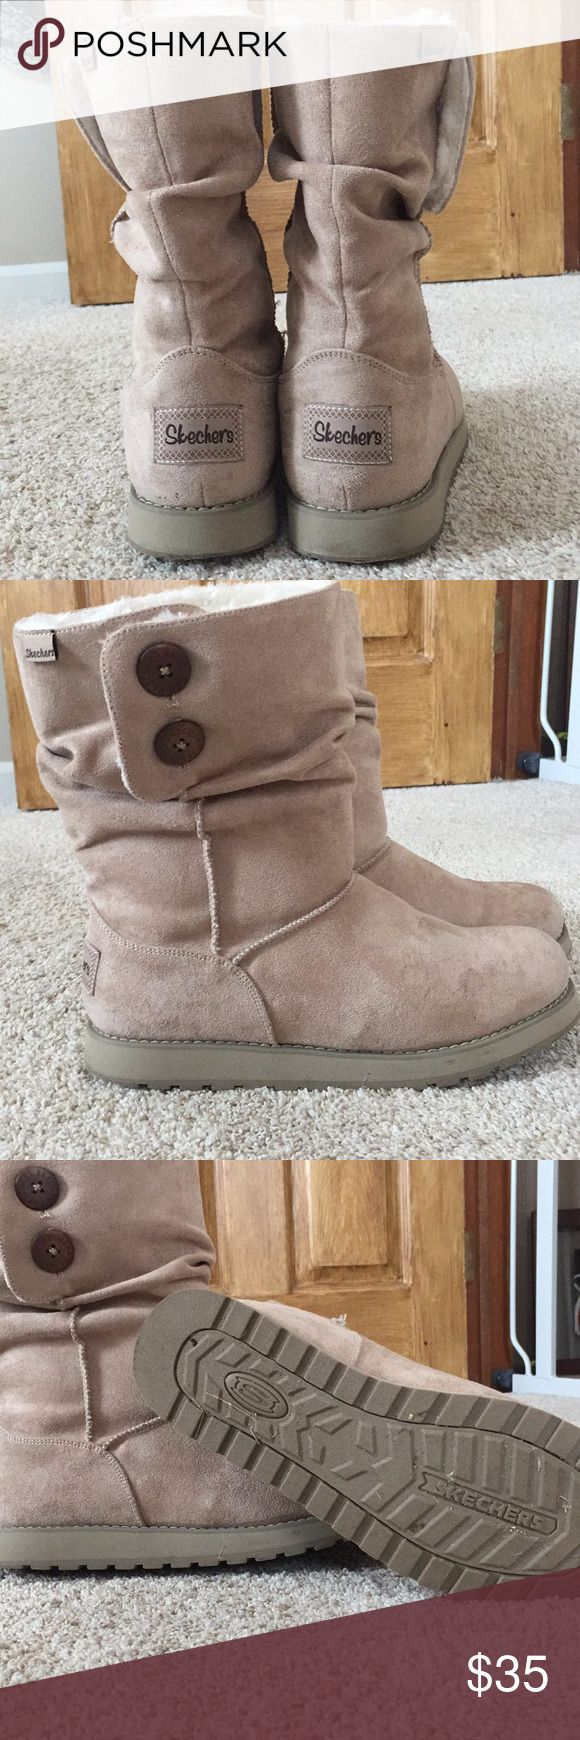 Sketchers boots Sketchers boots size 10. Only worn a few times - excellent condition. Sketchers Shoes Ankle Boots & Booties